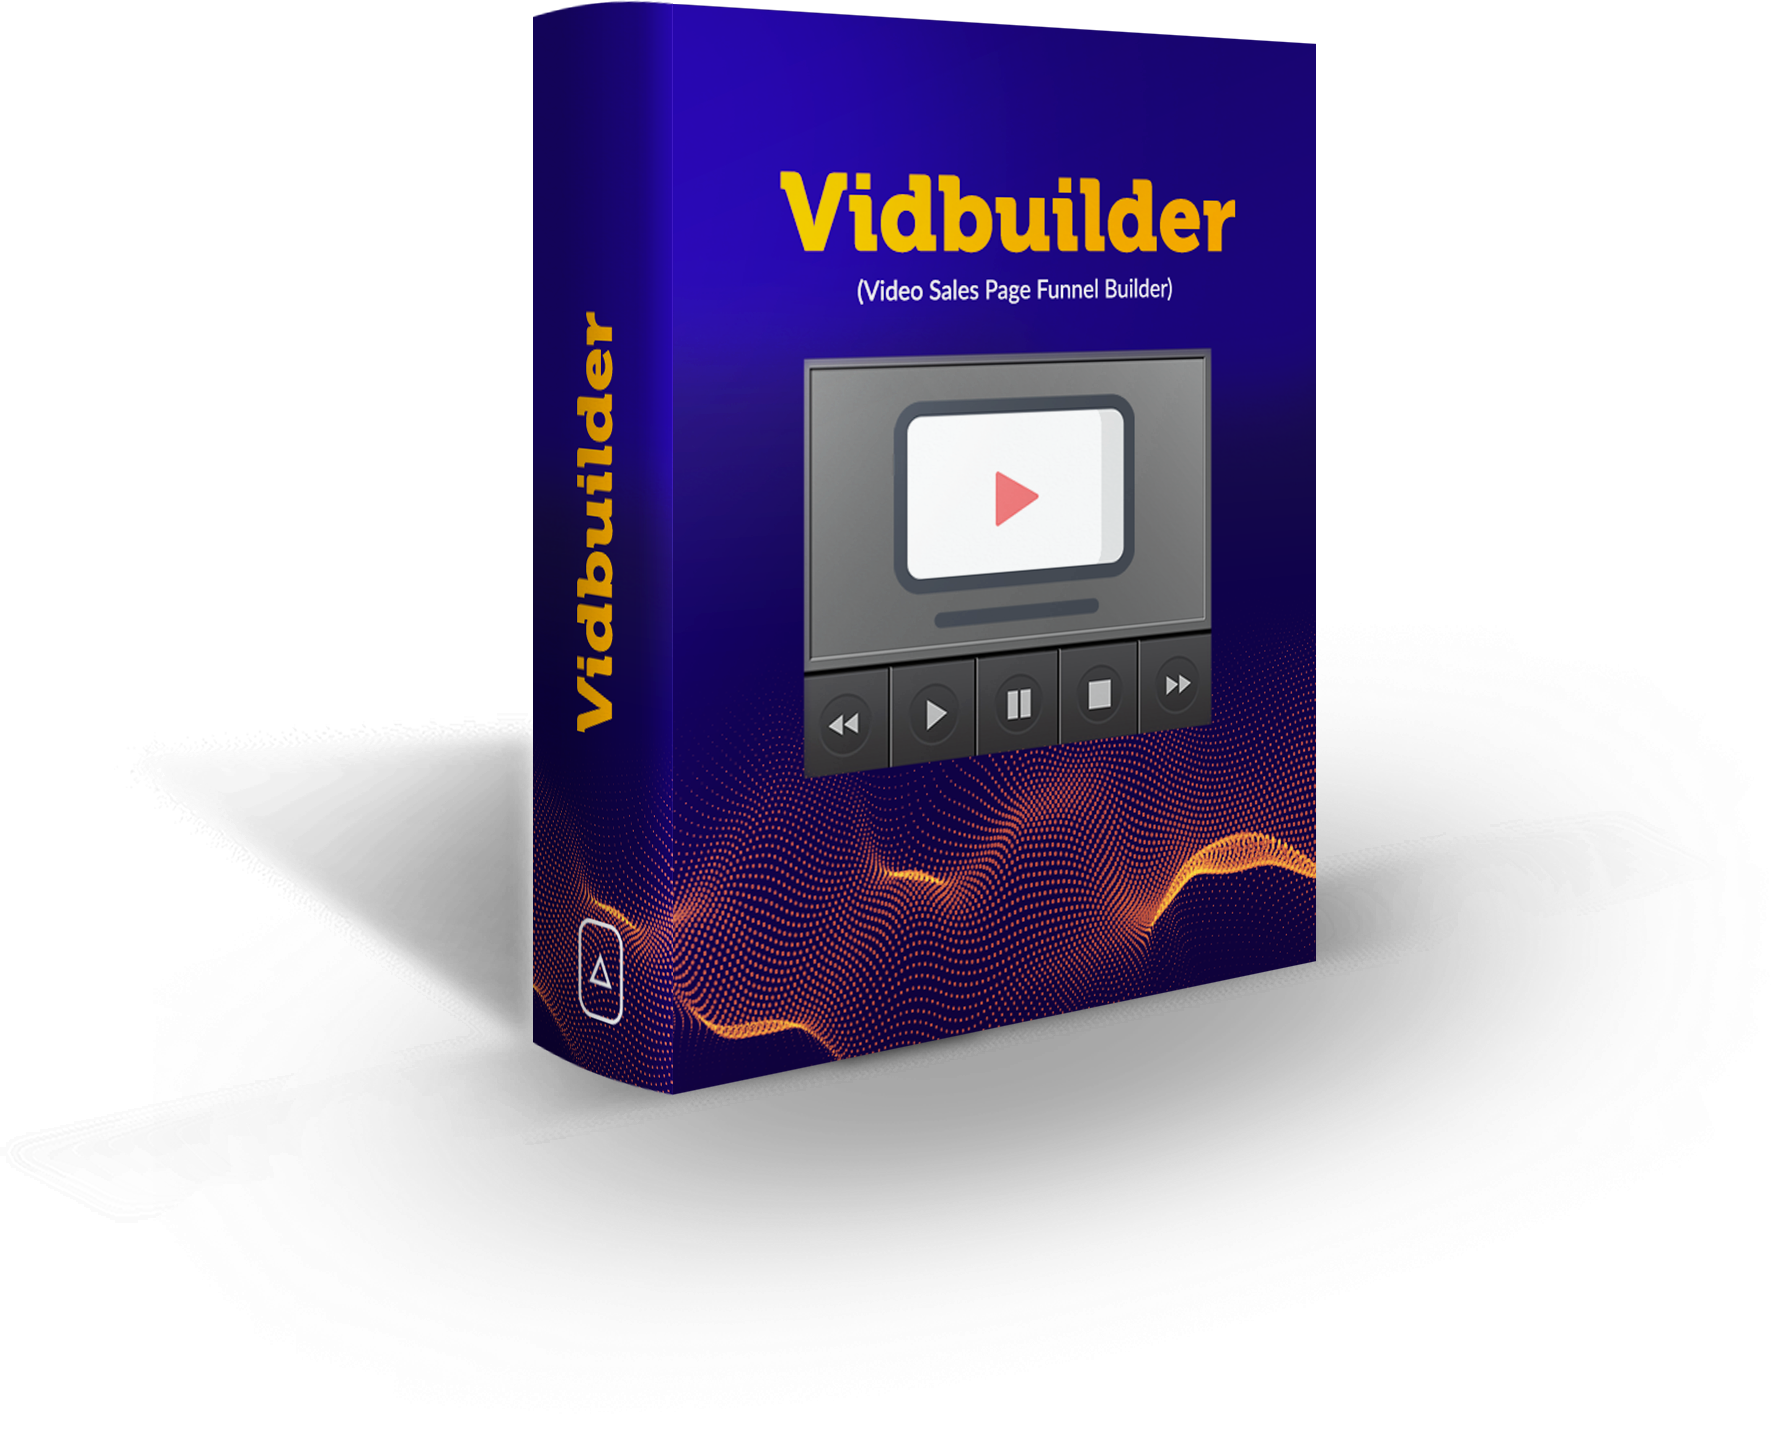 Vidbuilder (Video Sales Page Funnel Builder)